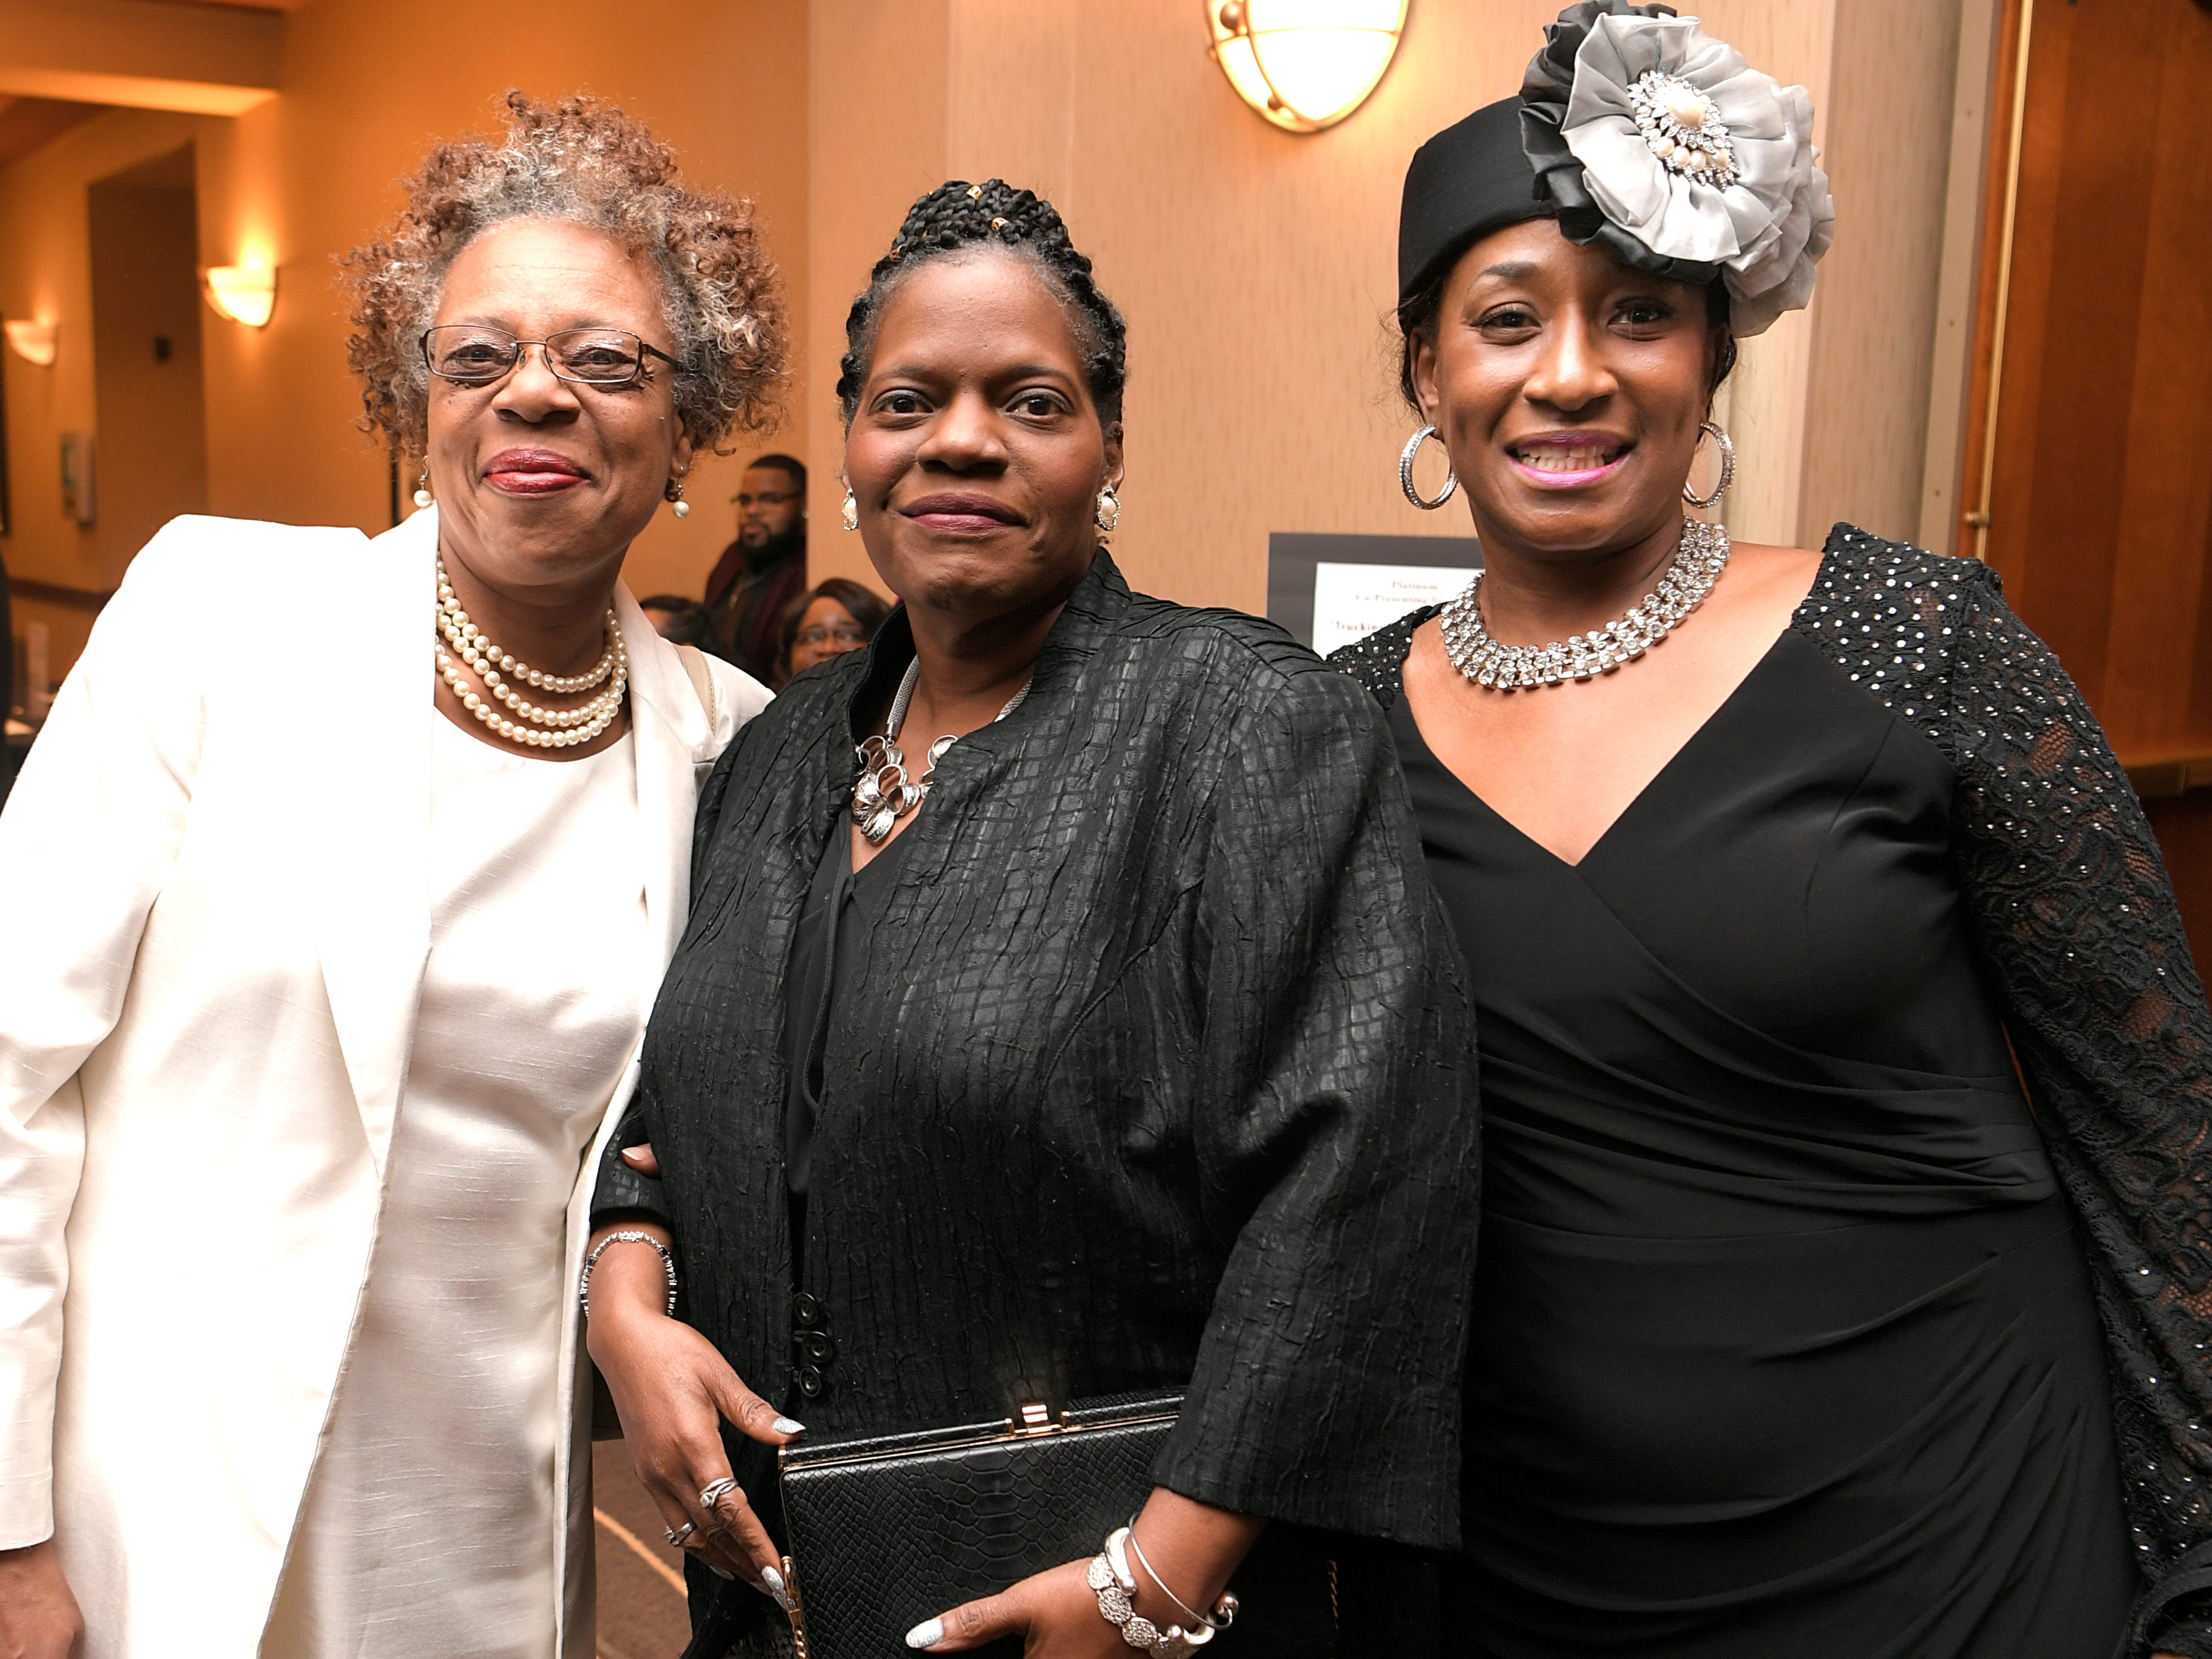 Charlene Harrison, Monic Oglesby and Melanie Officer at the African American Heritage Society's 18th Annual Black Tie Affair at the Embassy Suites in Franklin on Sat., Feb. 2, 2019.